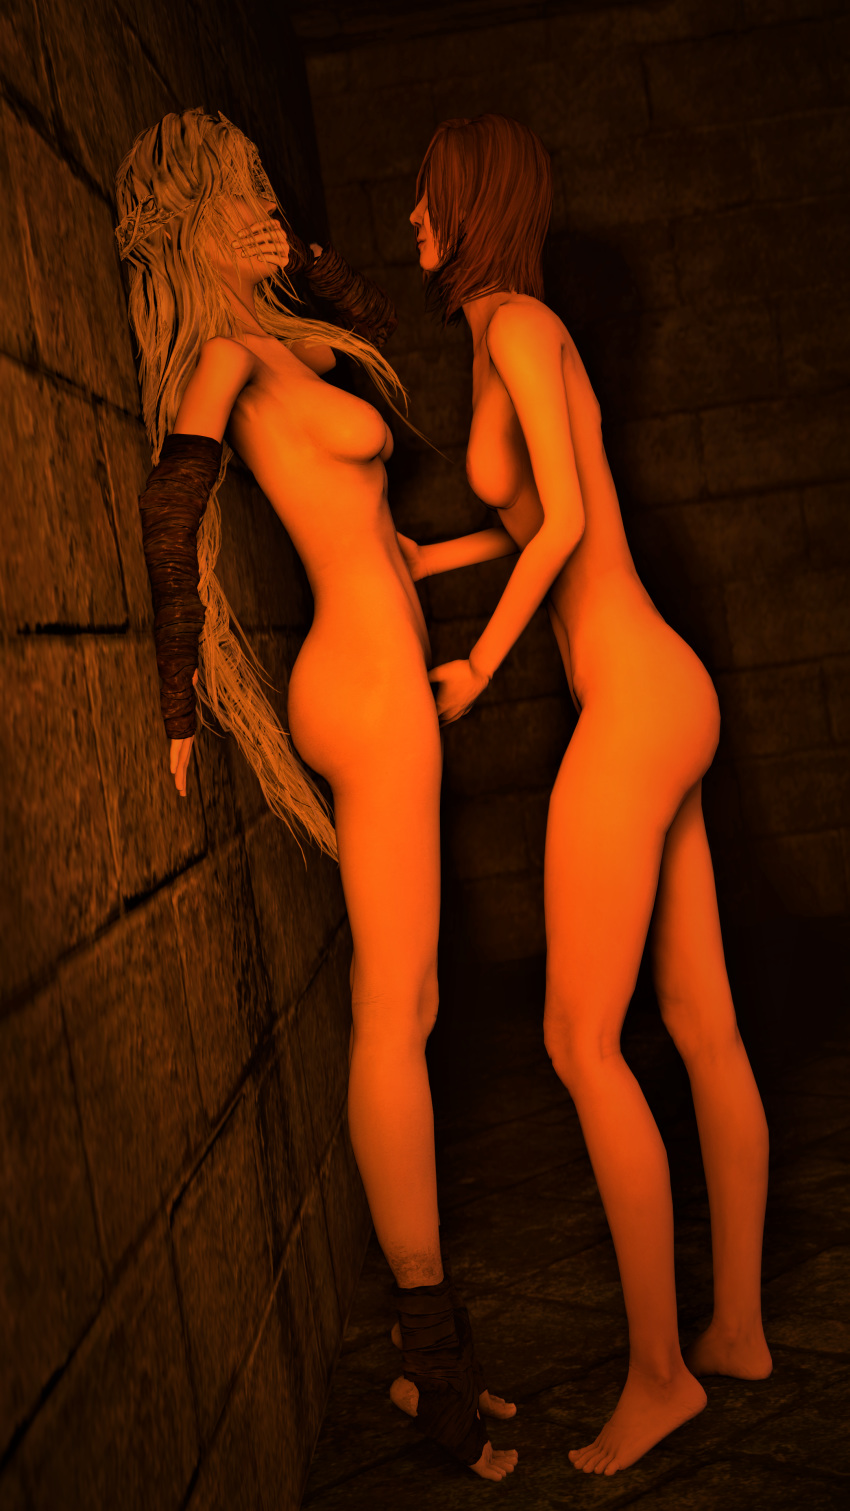 dark friede 3 lady souls Brandy and mr whiskers vore